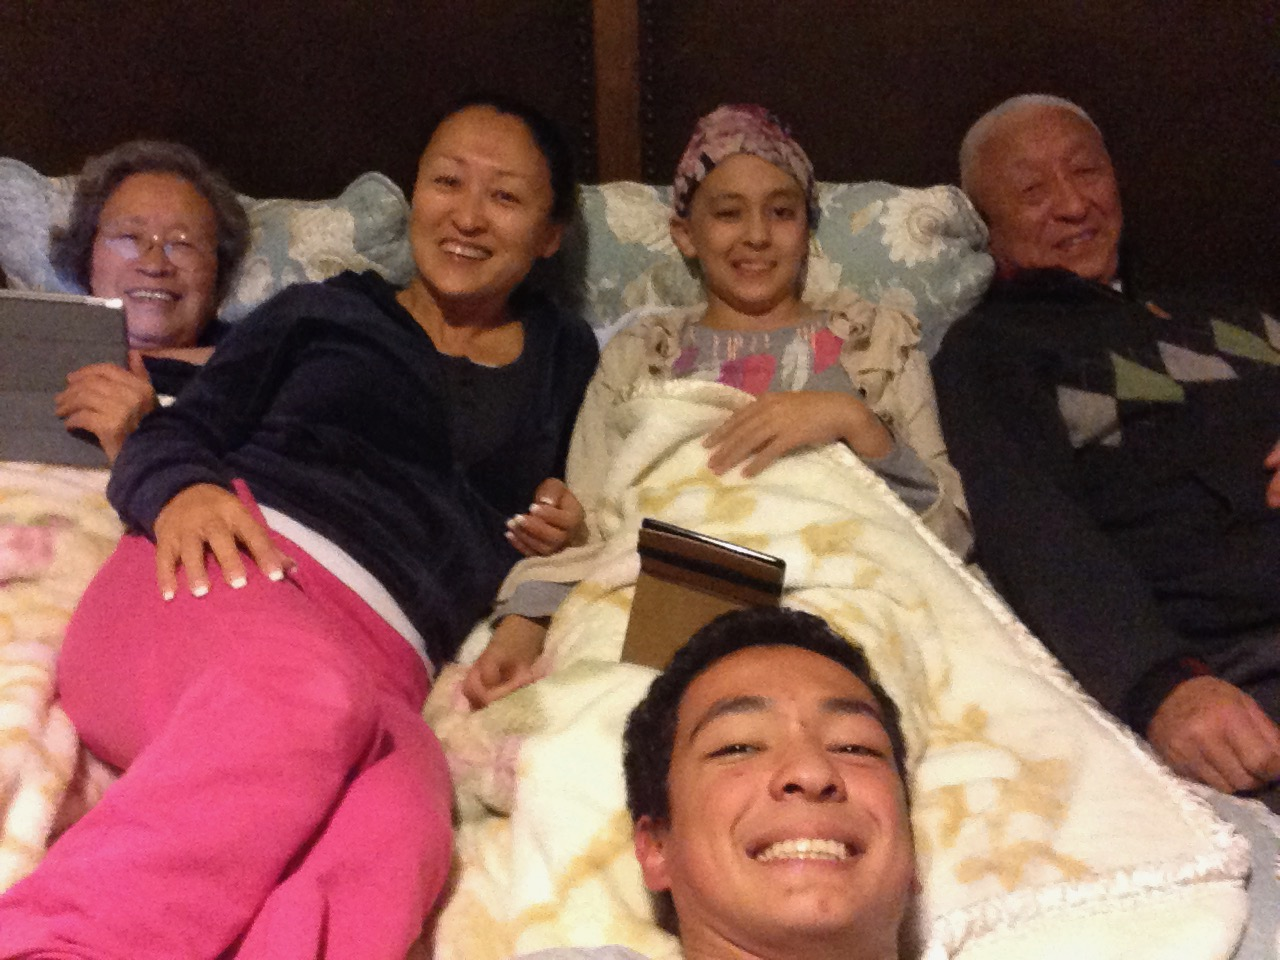 Our whole family in bed after Noah was discharged, though she was still going through Chemotherapy at the time.